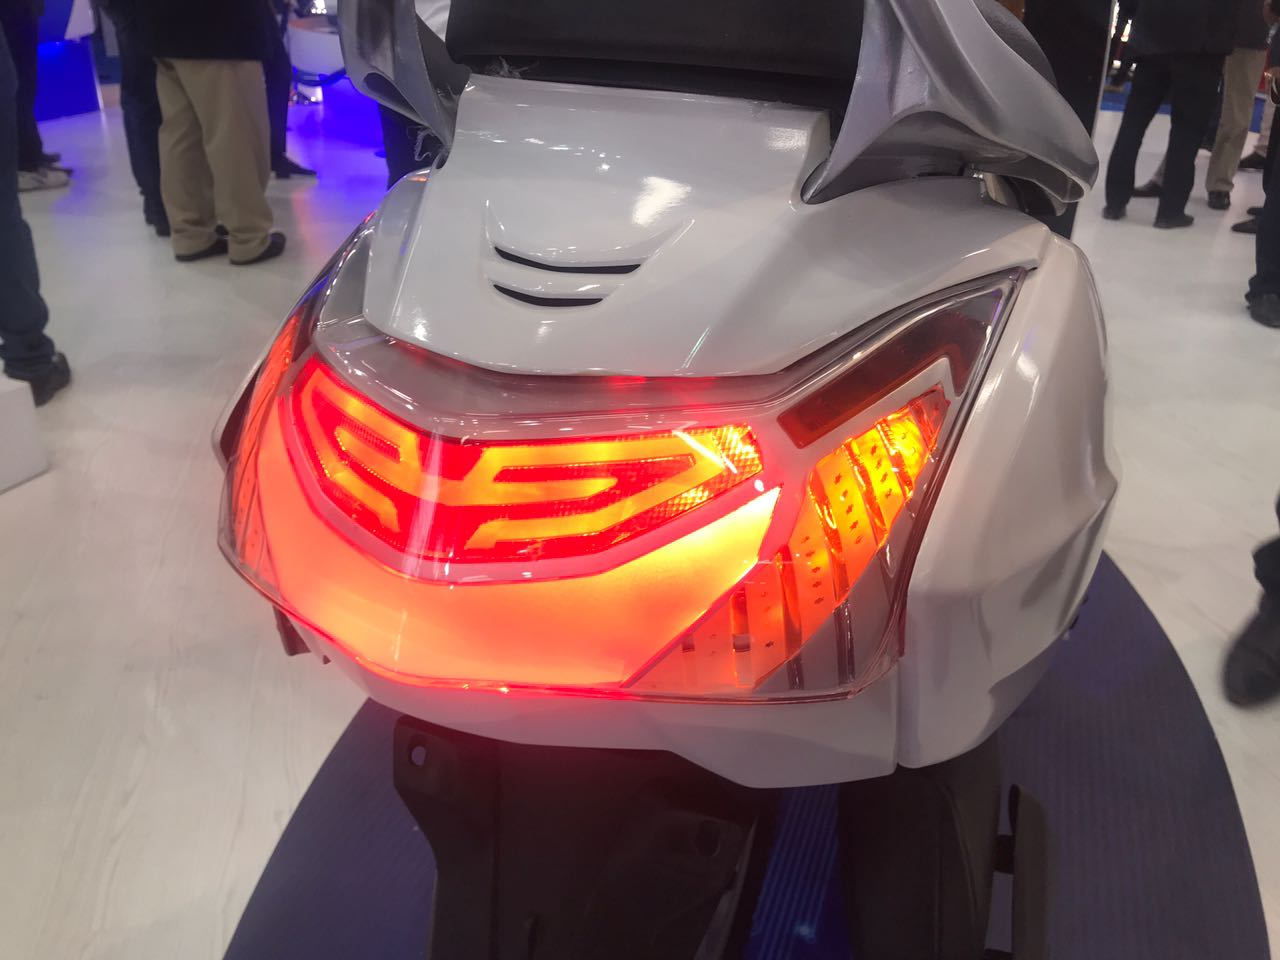 <p>Varroc Group is into telematics and illuminations. What you see here is an all-LED lights setup on the Honda Activa</p>